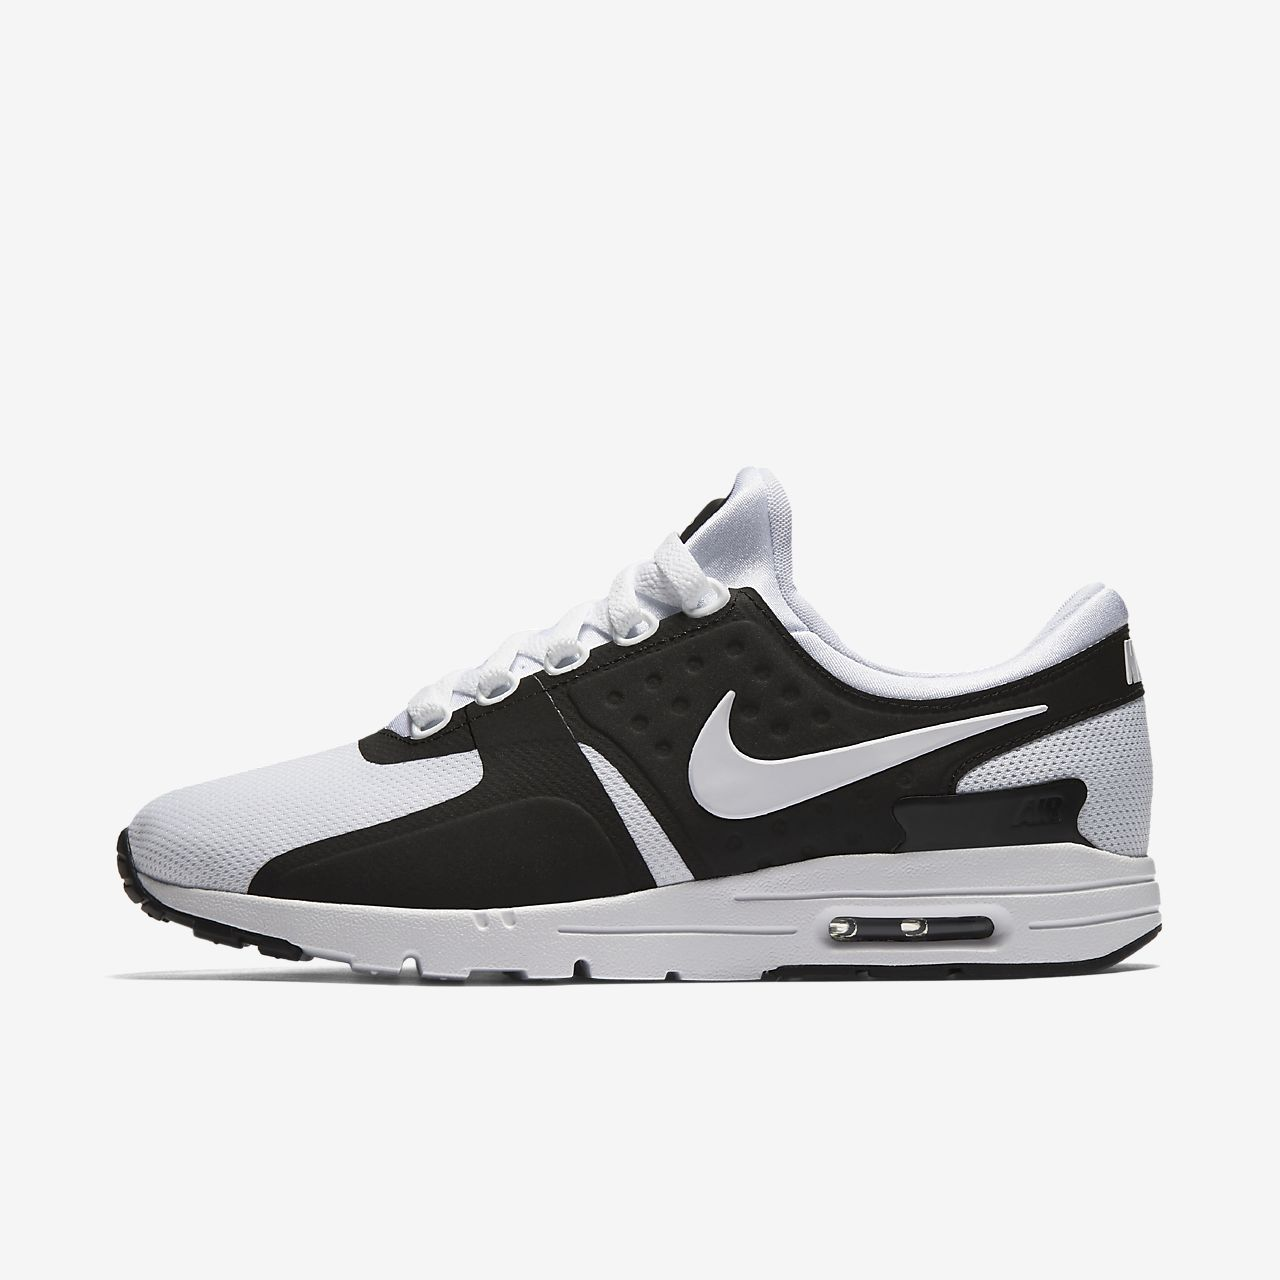 women's nike air max 90 flyknit army hrc ees army login portal